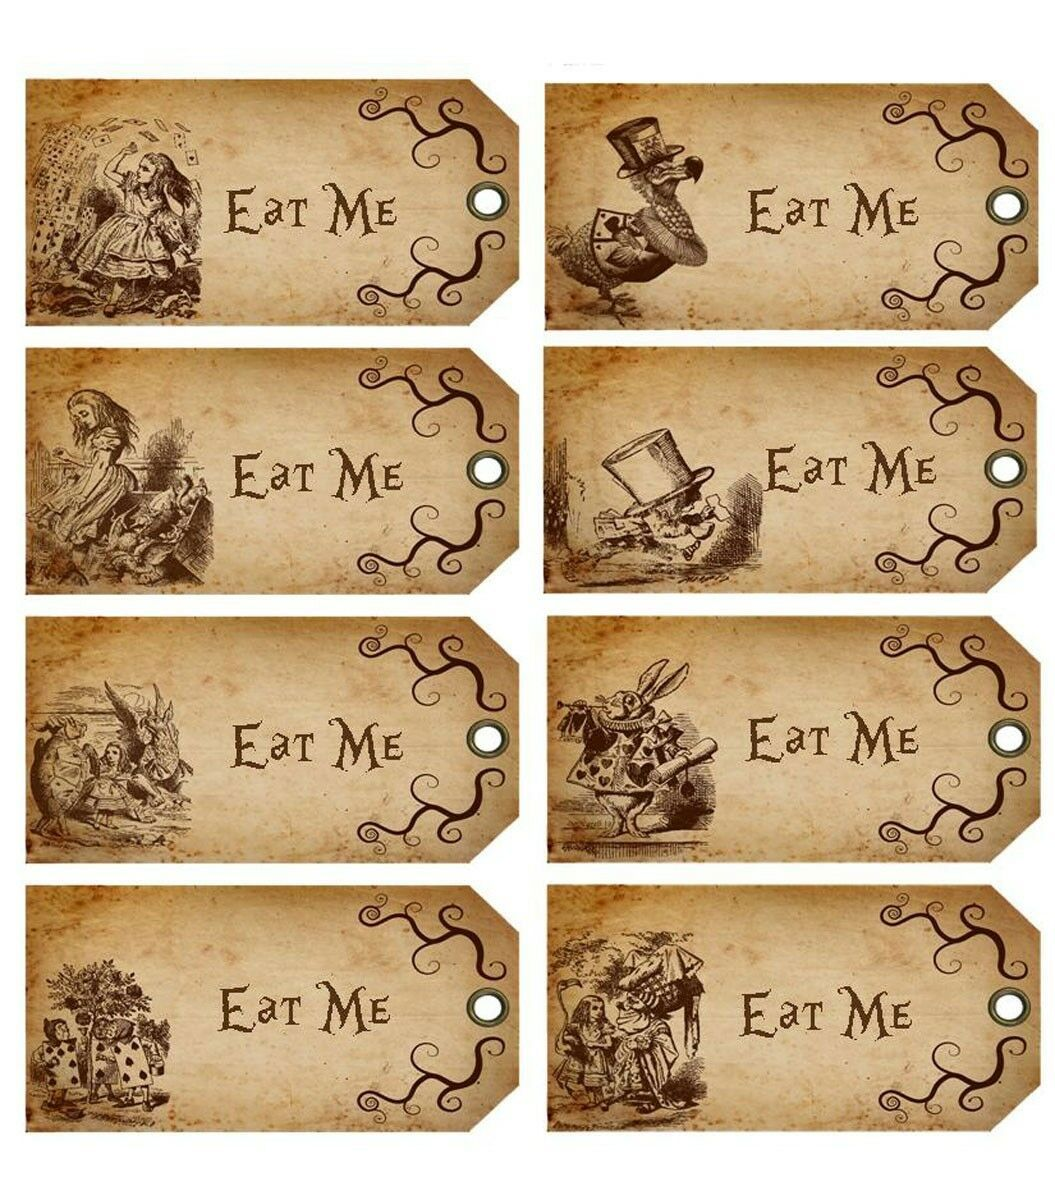 Alice In Wonderland 20 Eat Me Drink Me Open Me Take Me Party Tags Decoration Ebay Alice In Wonderland Birthday Alice In Wonderland Tea Party Alice In Wonderland Tea Party Birthday